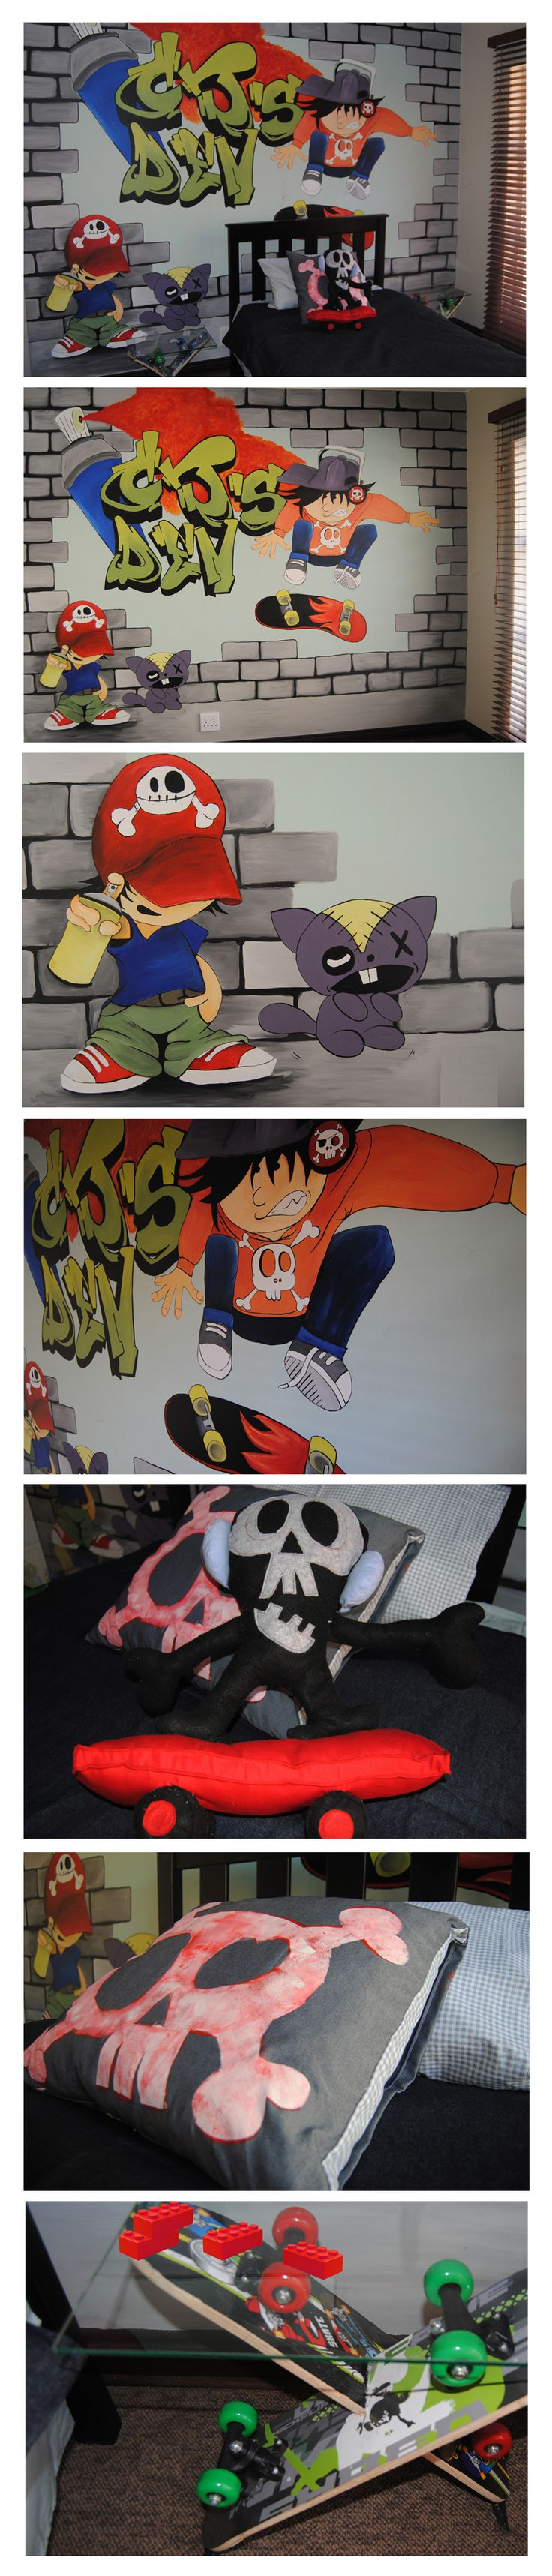 Oogappel Design Studio and our sister company Flippe&Fleur Designer Bedding collaborated to create an epic Skaterboy themed room makeover for a cool little dude. Credits: Mural and hand painted skull scatter by Oogaapel Design Studio Credits: Bedding (3/4 Denim Duvet Cover), Skater Skull plushy and skateboard side tables by Flippe&Fleur Designer Bedding